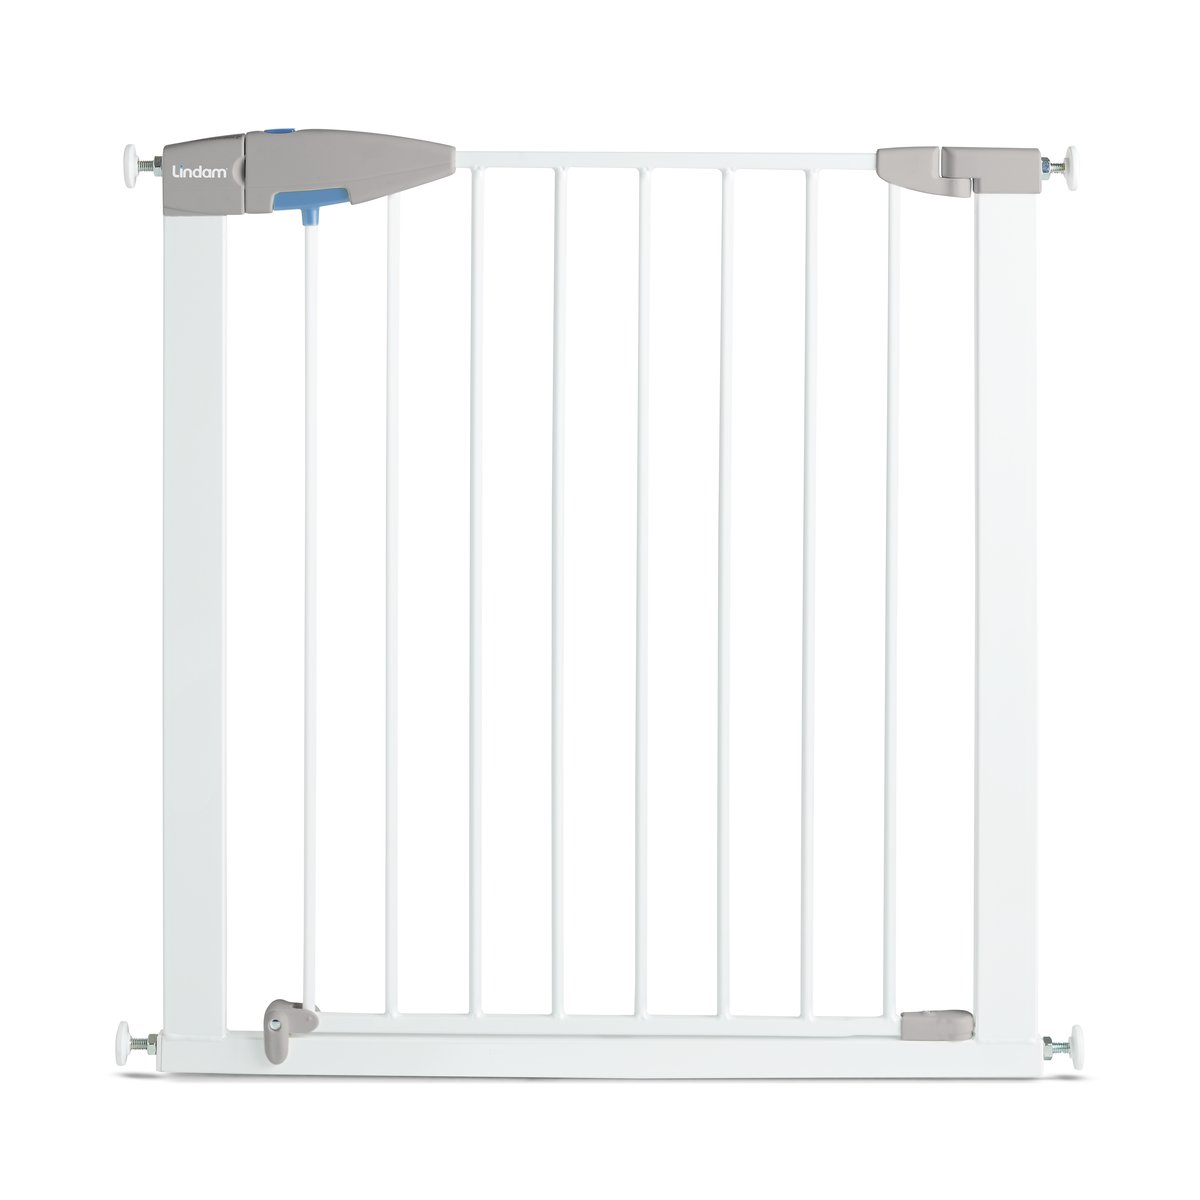 Lindam Sure Shut Porte Pressure Fit Safety Gate 89 - 96 cm